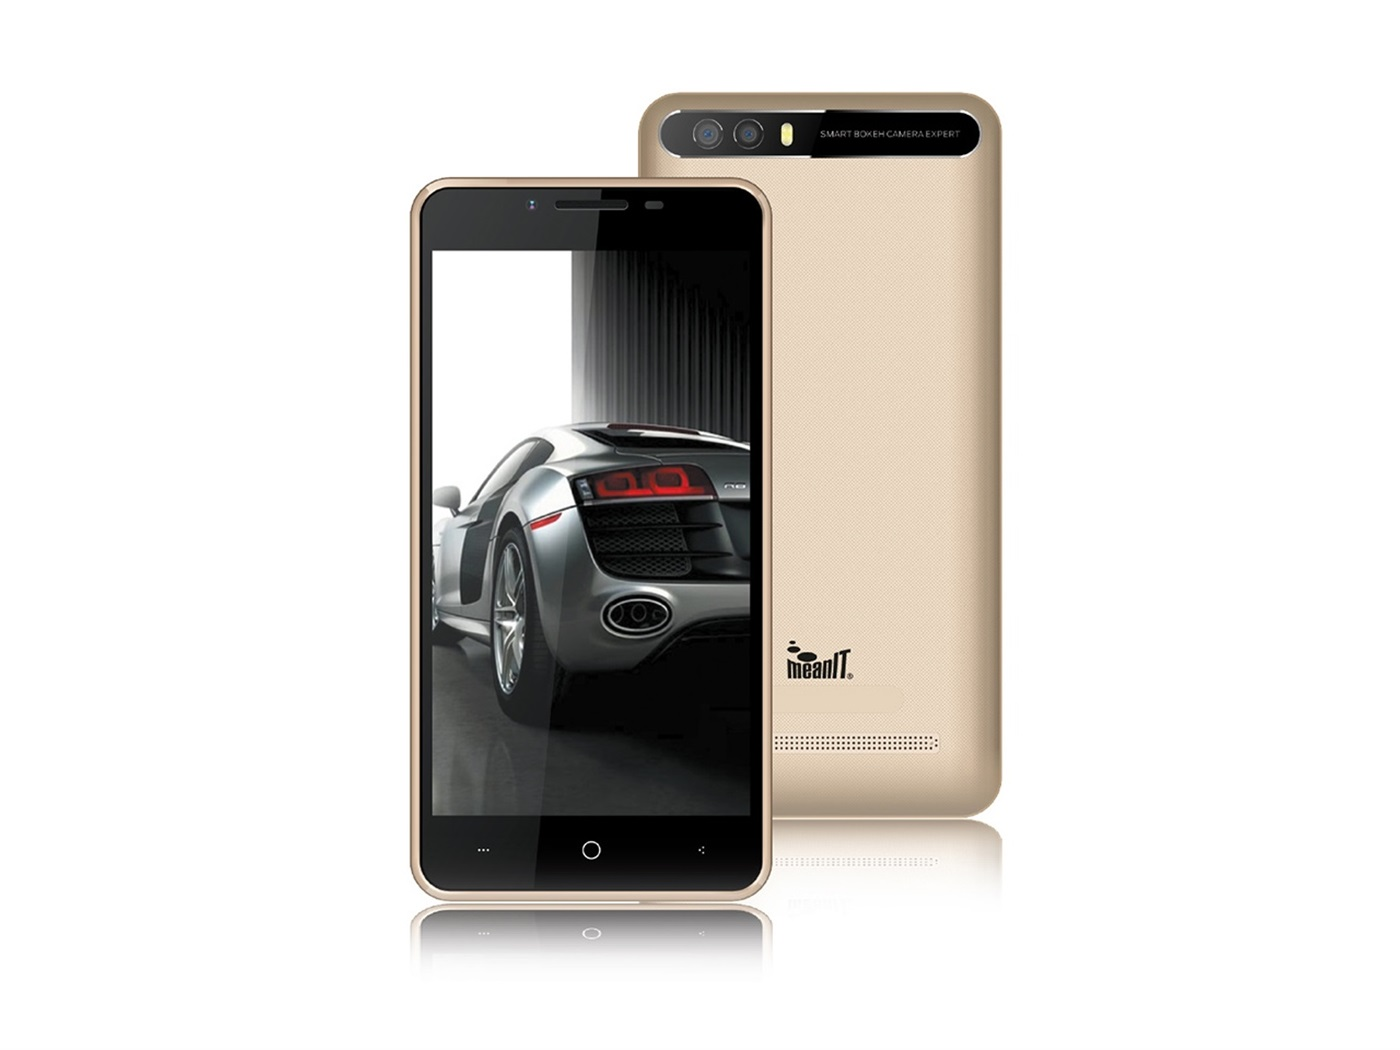 MeanIt C41 gold smartphone